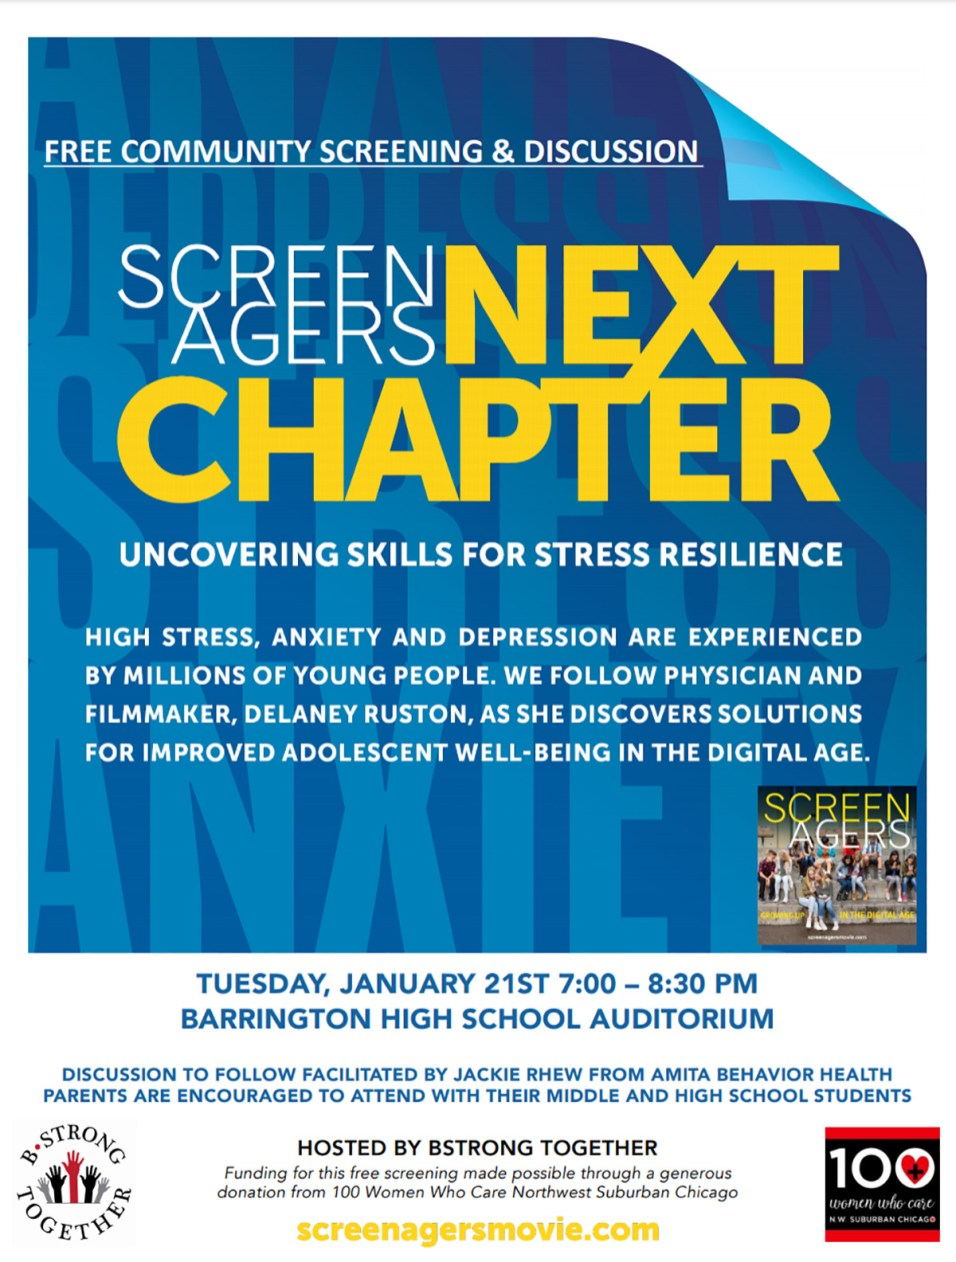 365 - BStrong Together Screenagers